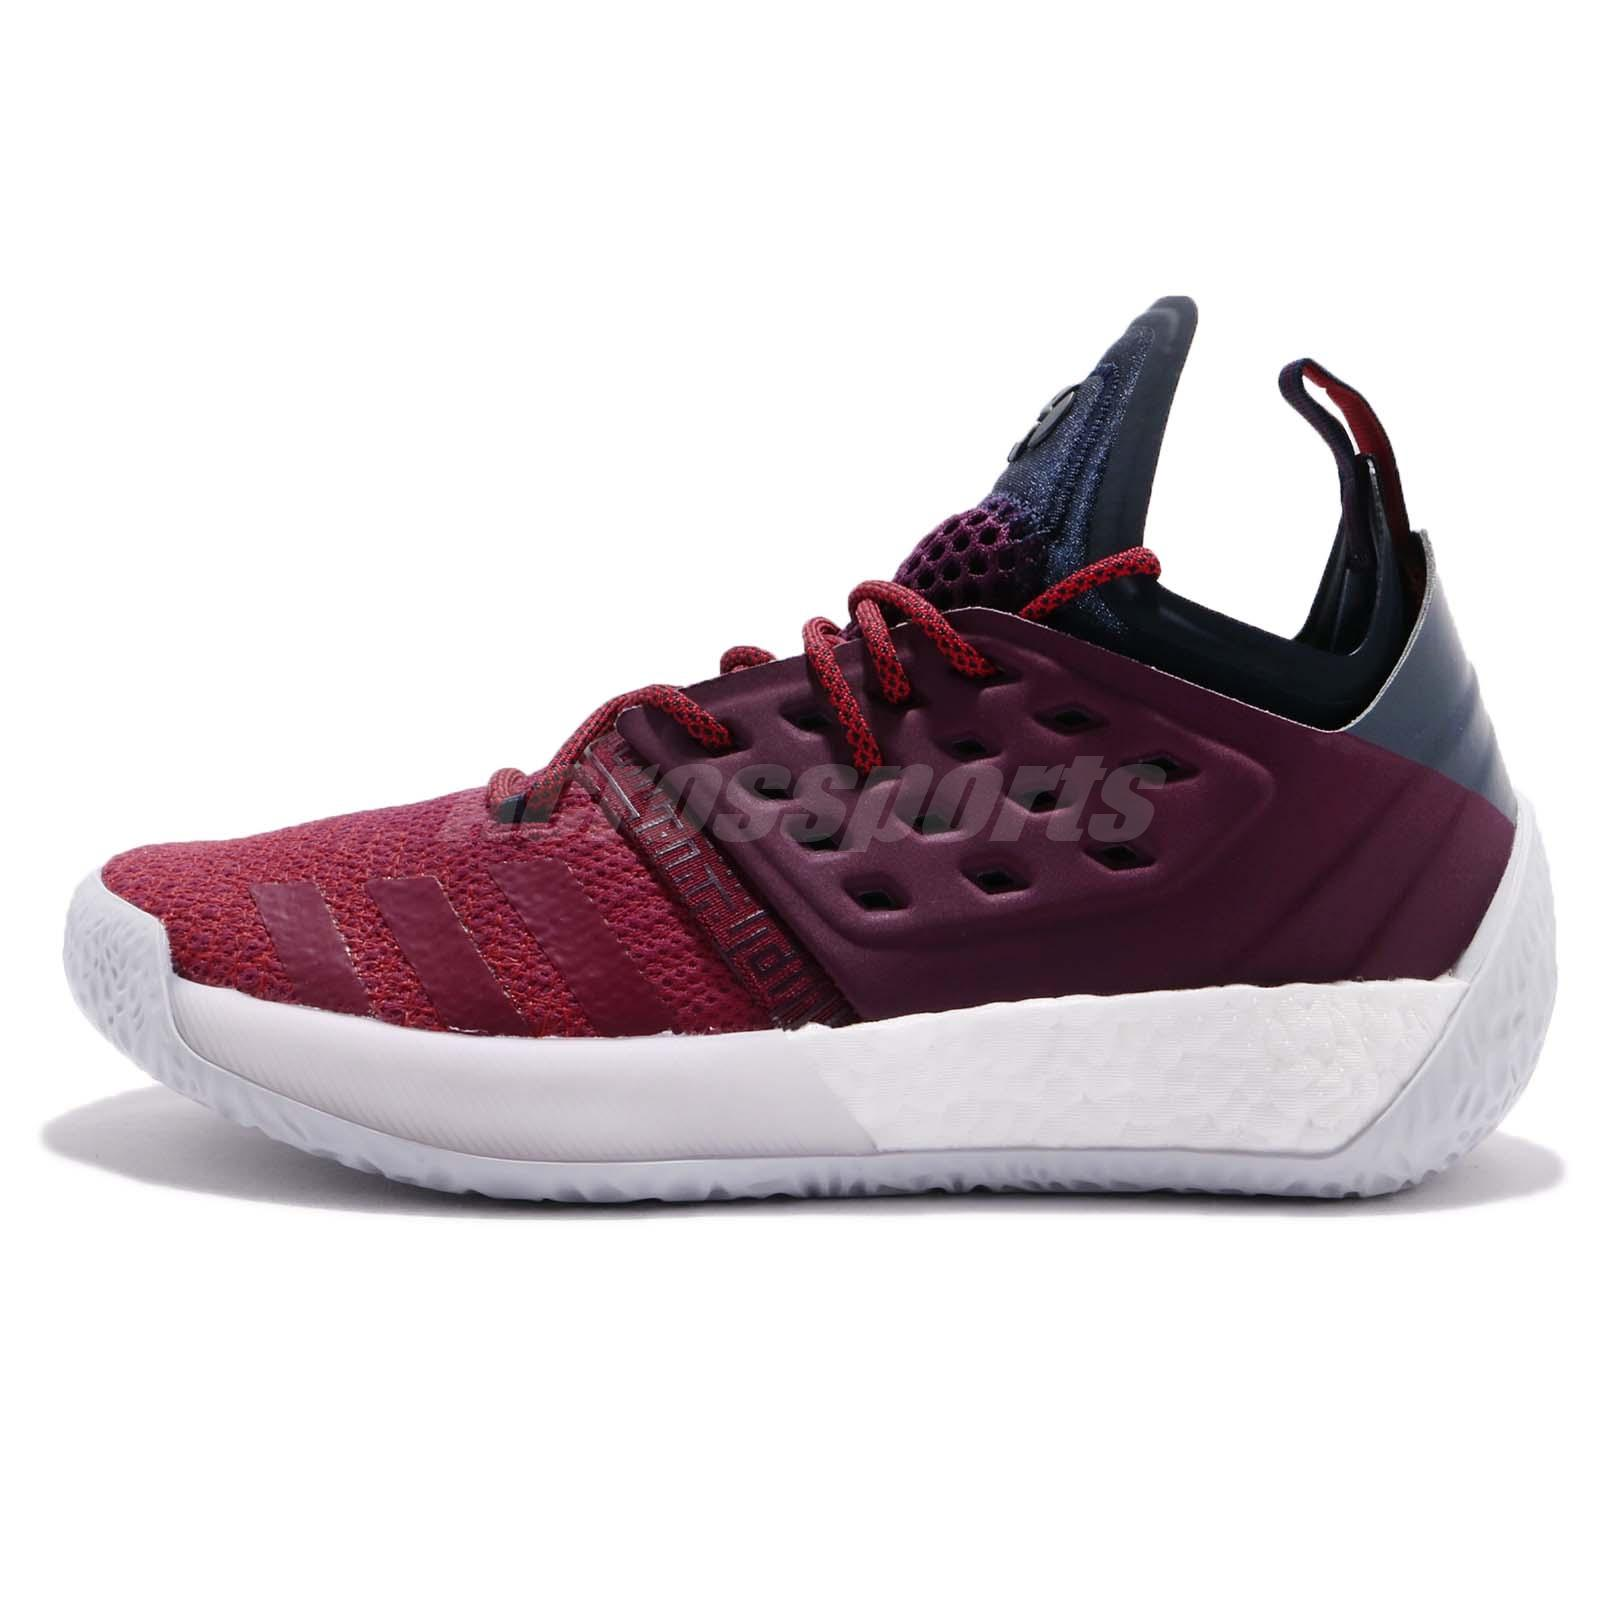 100% authentic c7665 e3092 new arrivals adidas harden vol. 2 ignite ii james harden maroon red men basketball  ah2124